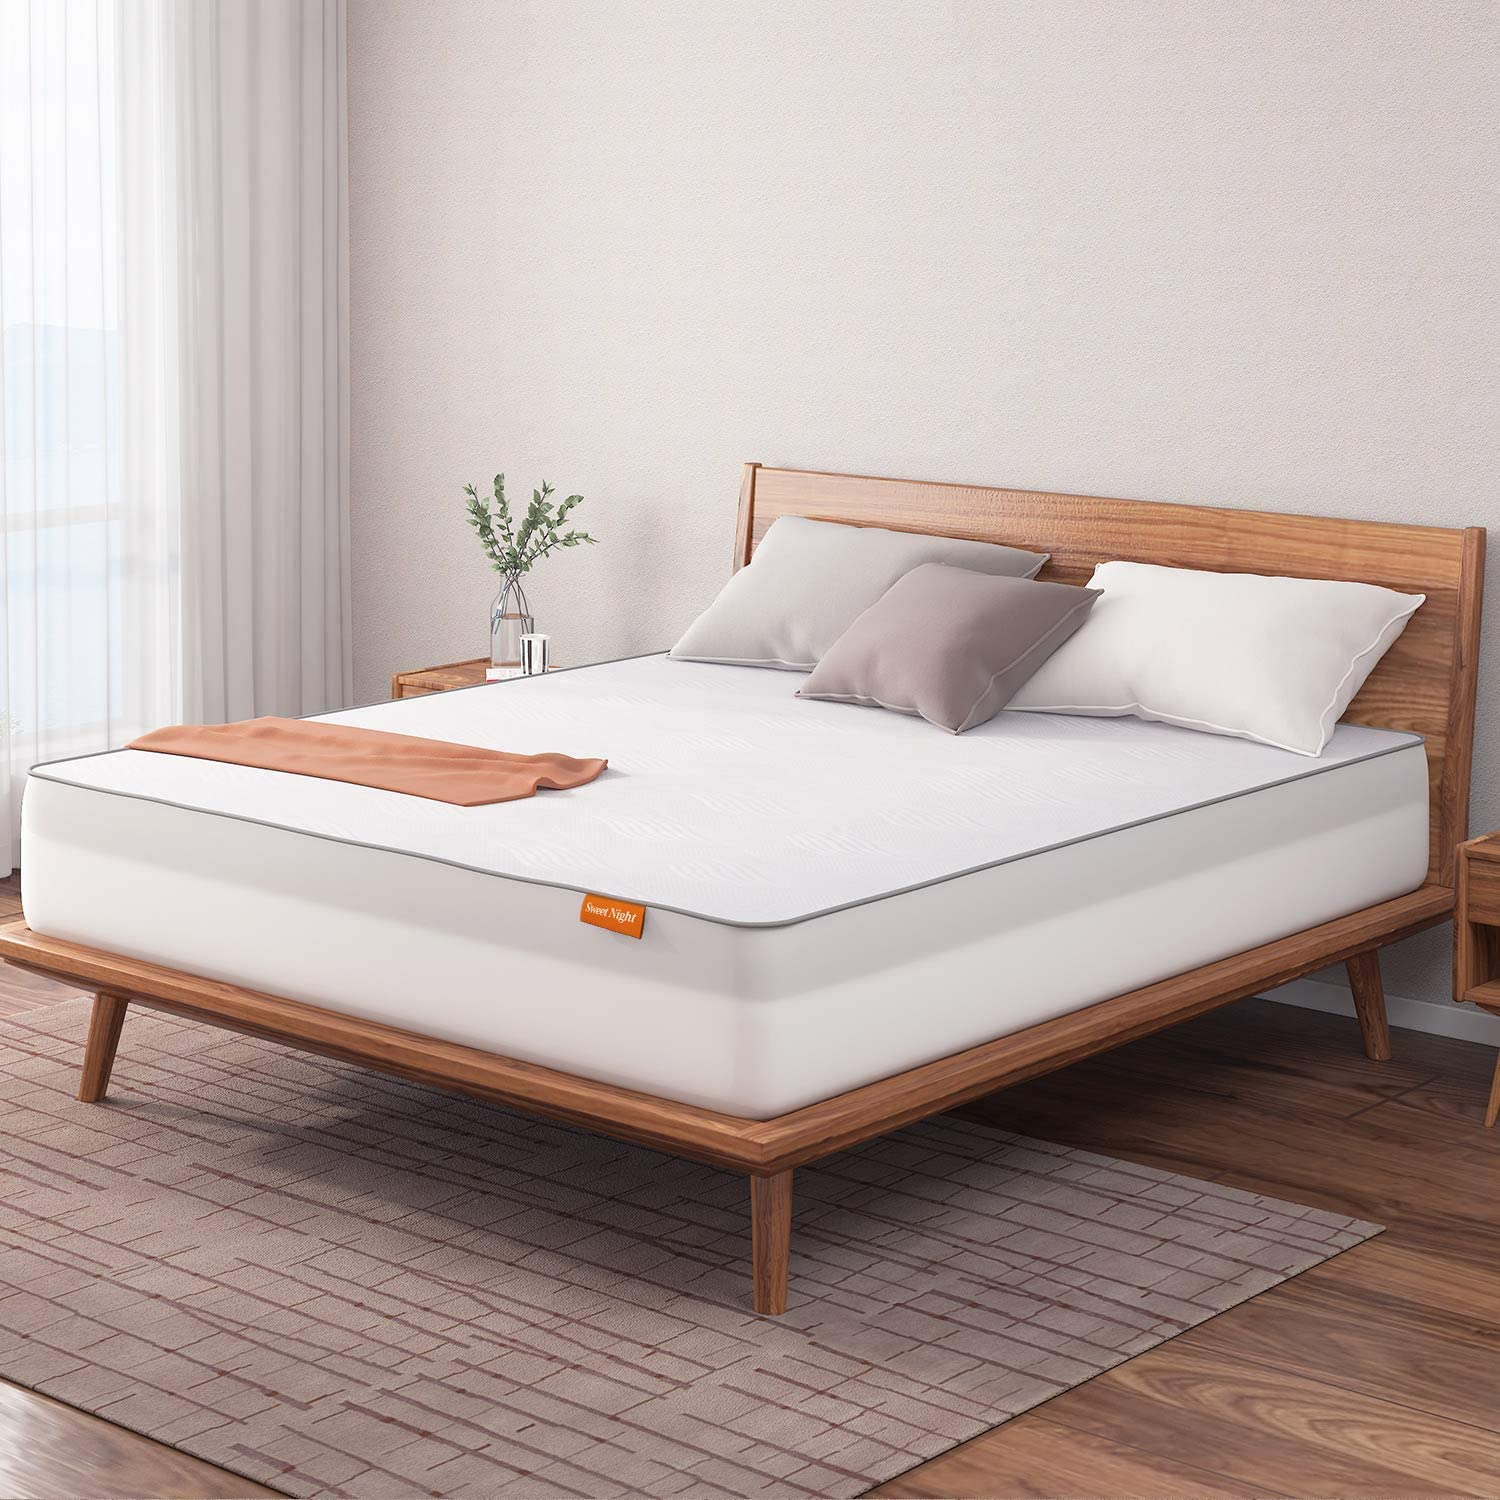 Sweetnight Mattress Topper Queen Size with Waterproof Protector